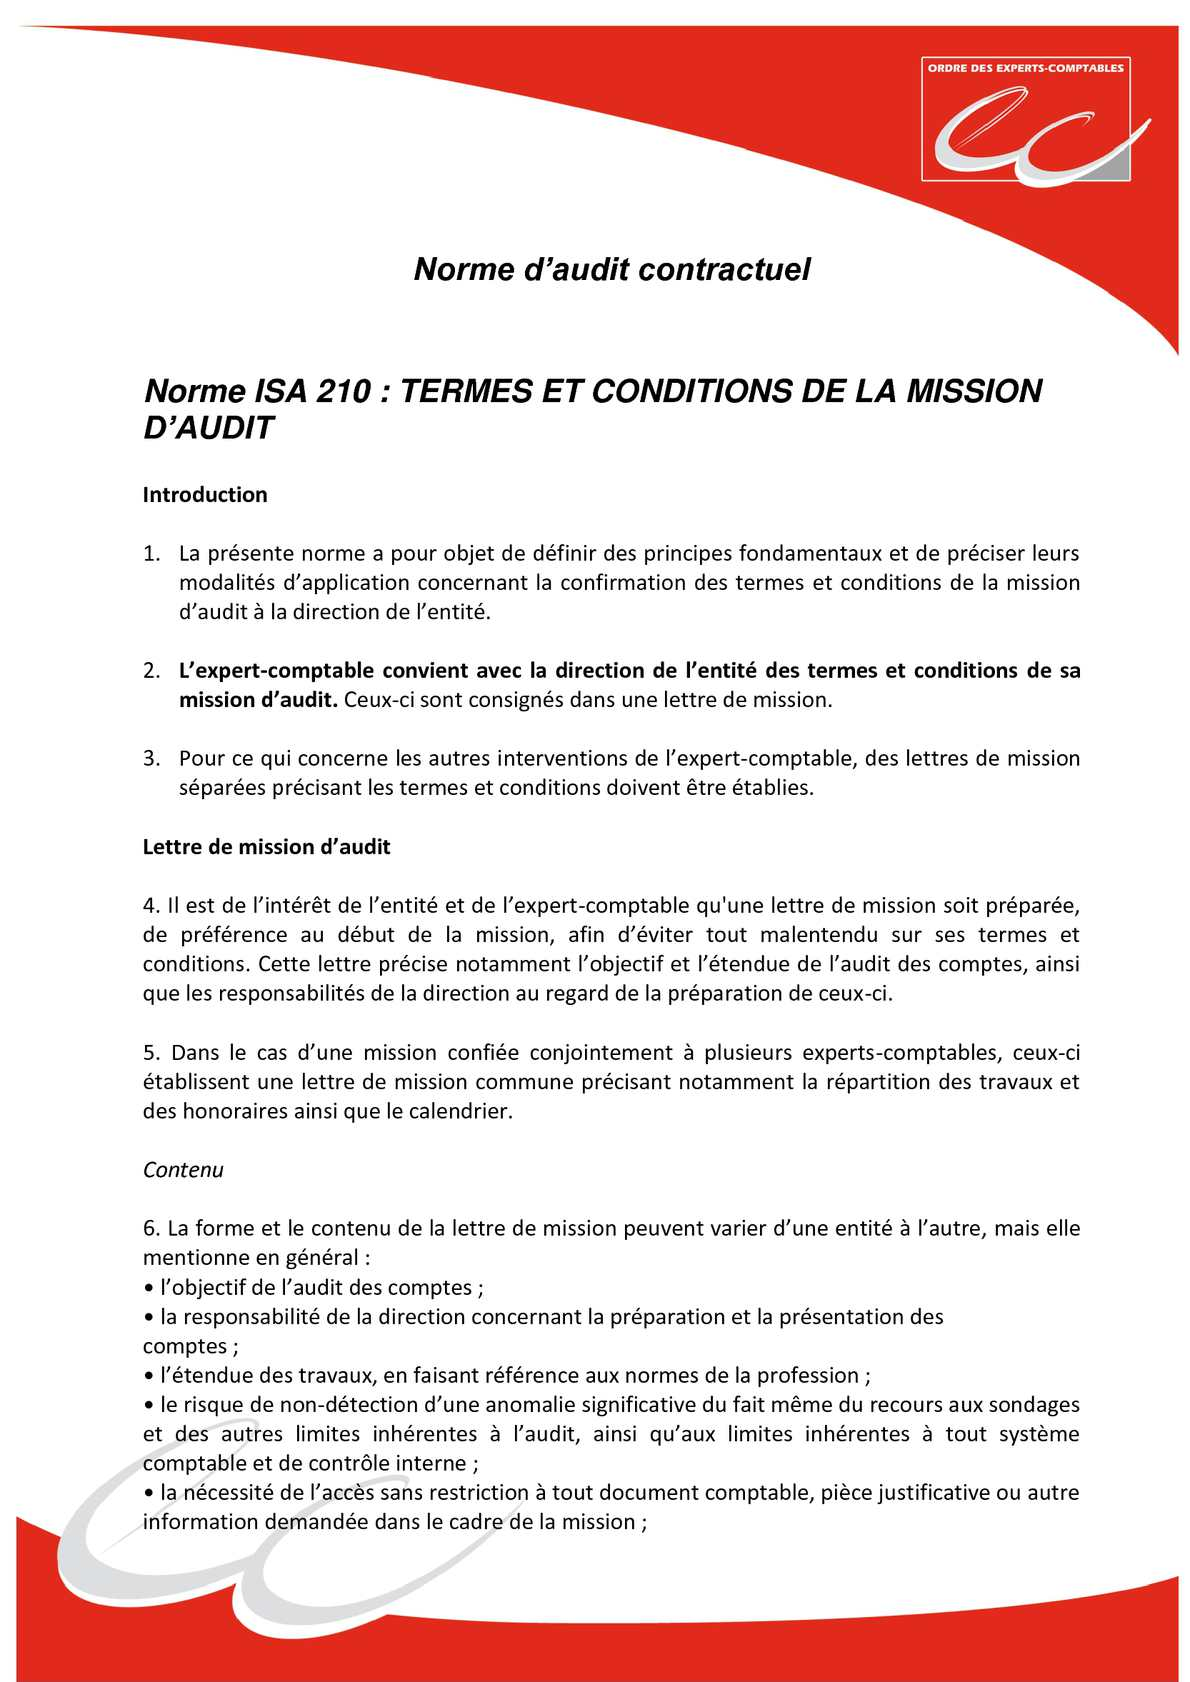 exemple lettre de mission expert comptable Calaméo   NS   Mission d'audit contractuel exemple lettre de mission expert comptable